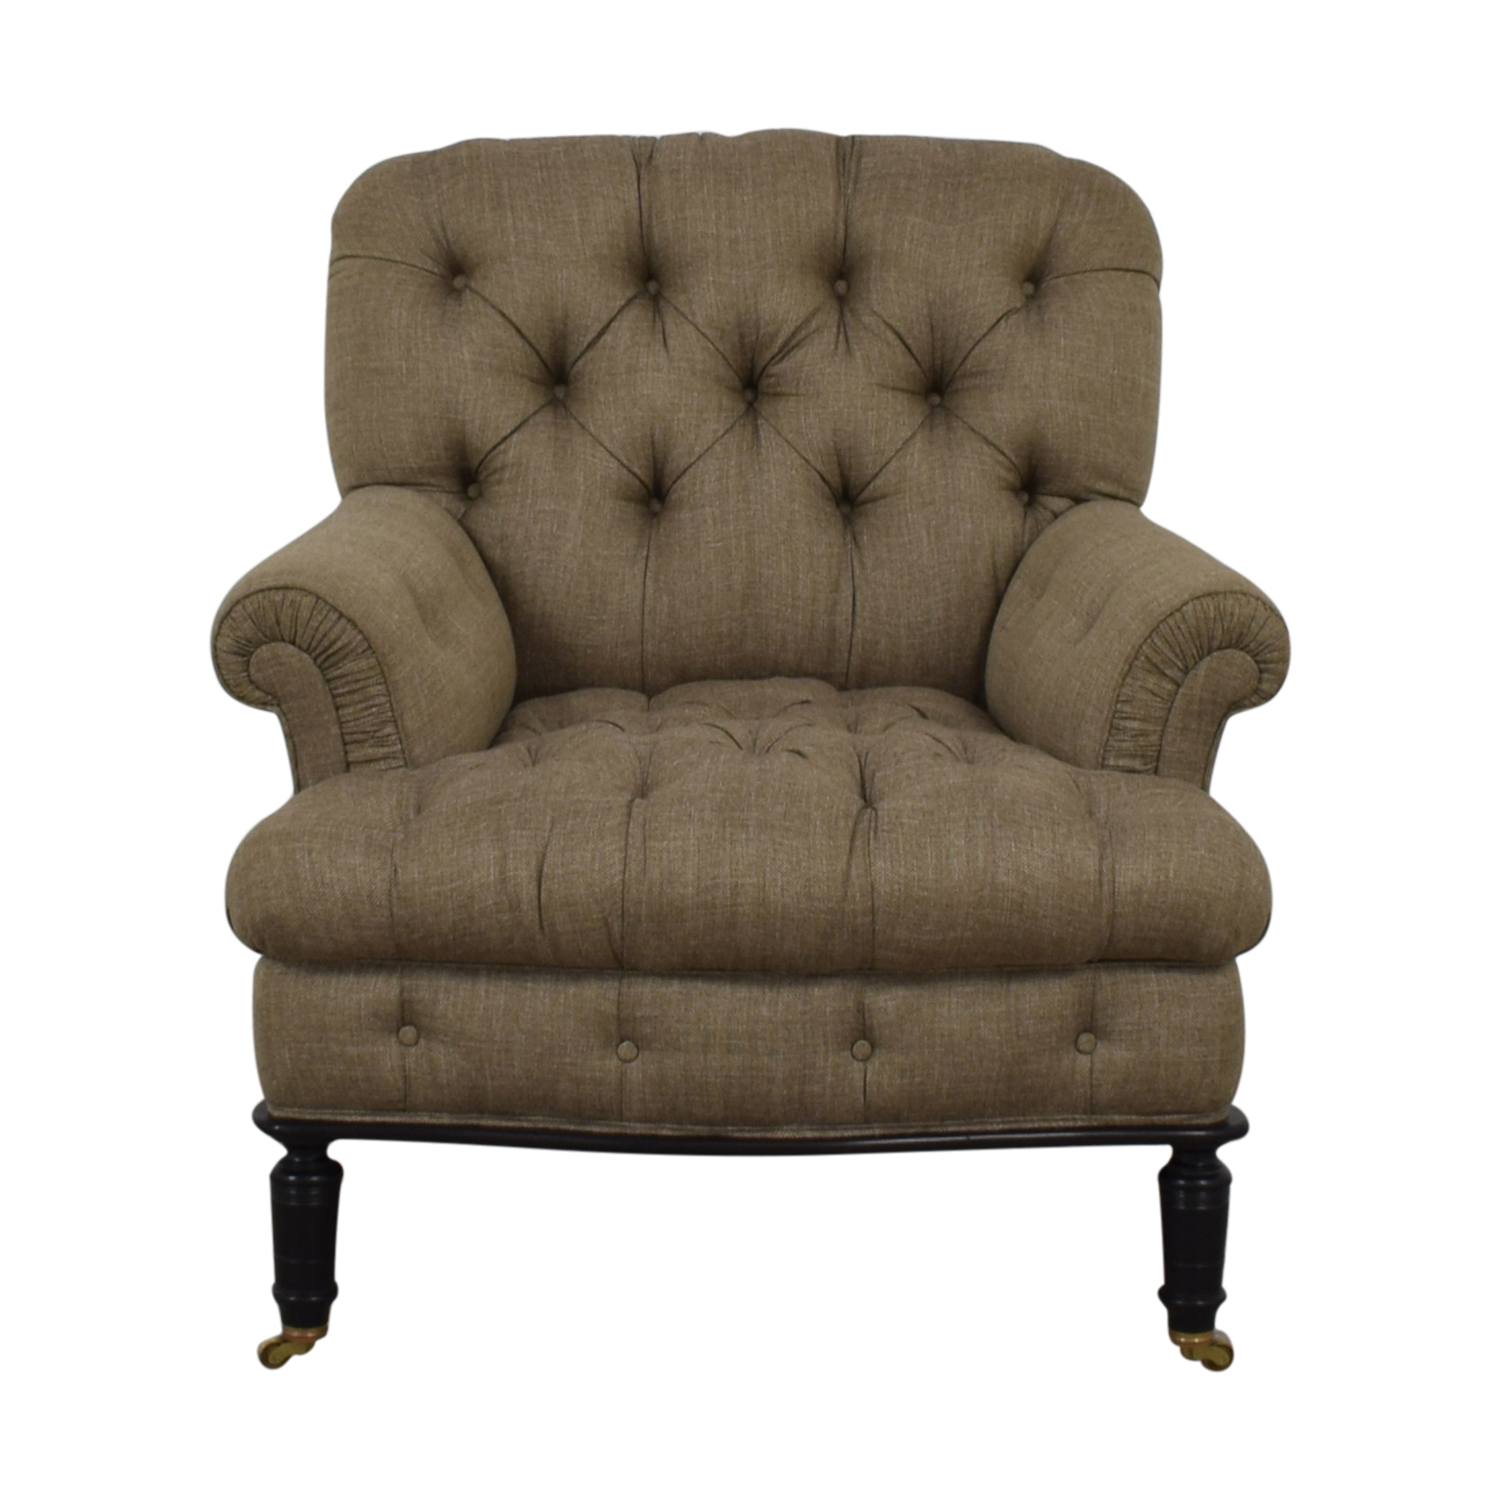 Furniture Masters Furniture Masters Grey Tufted Accent Chair nj